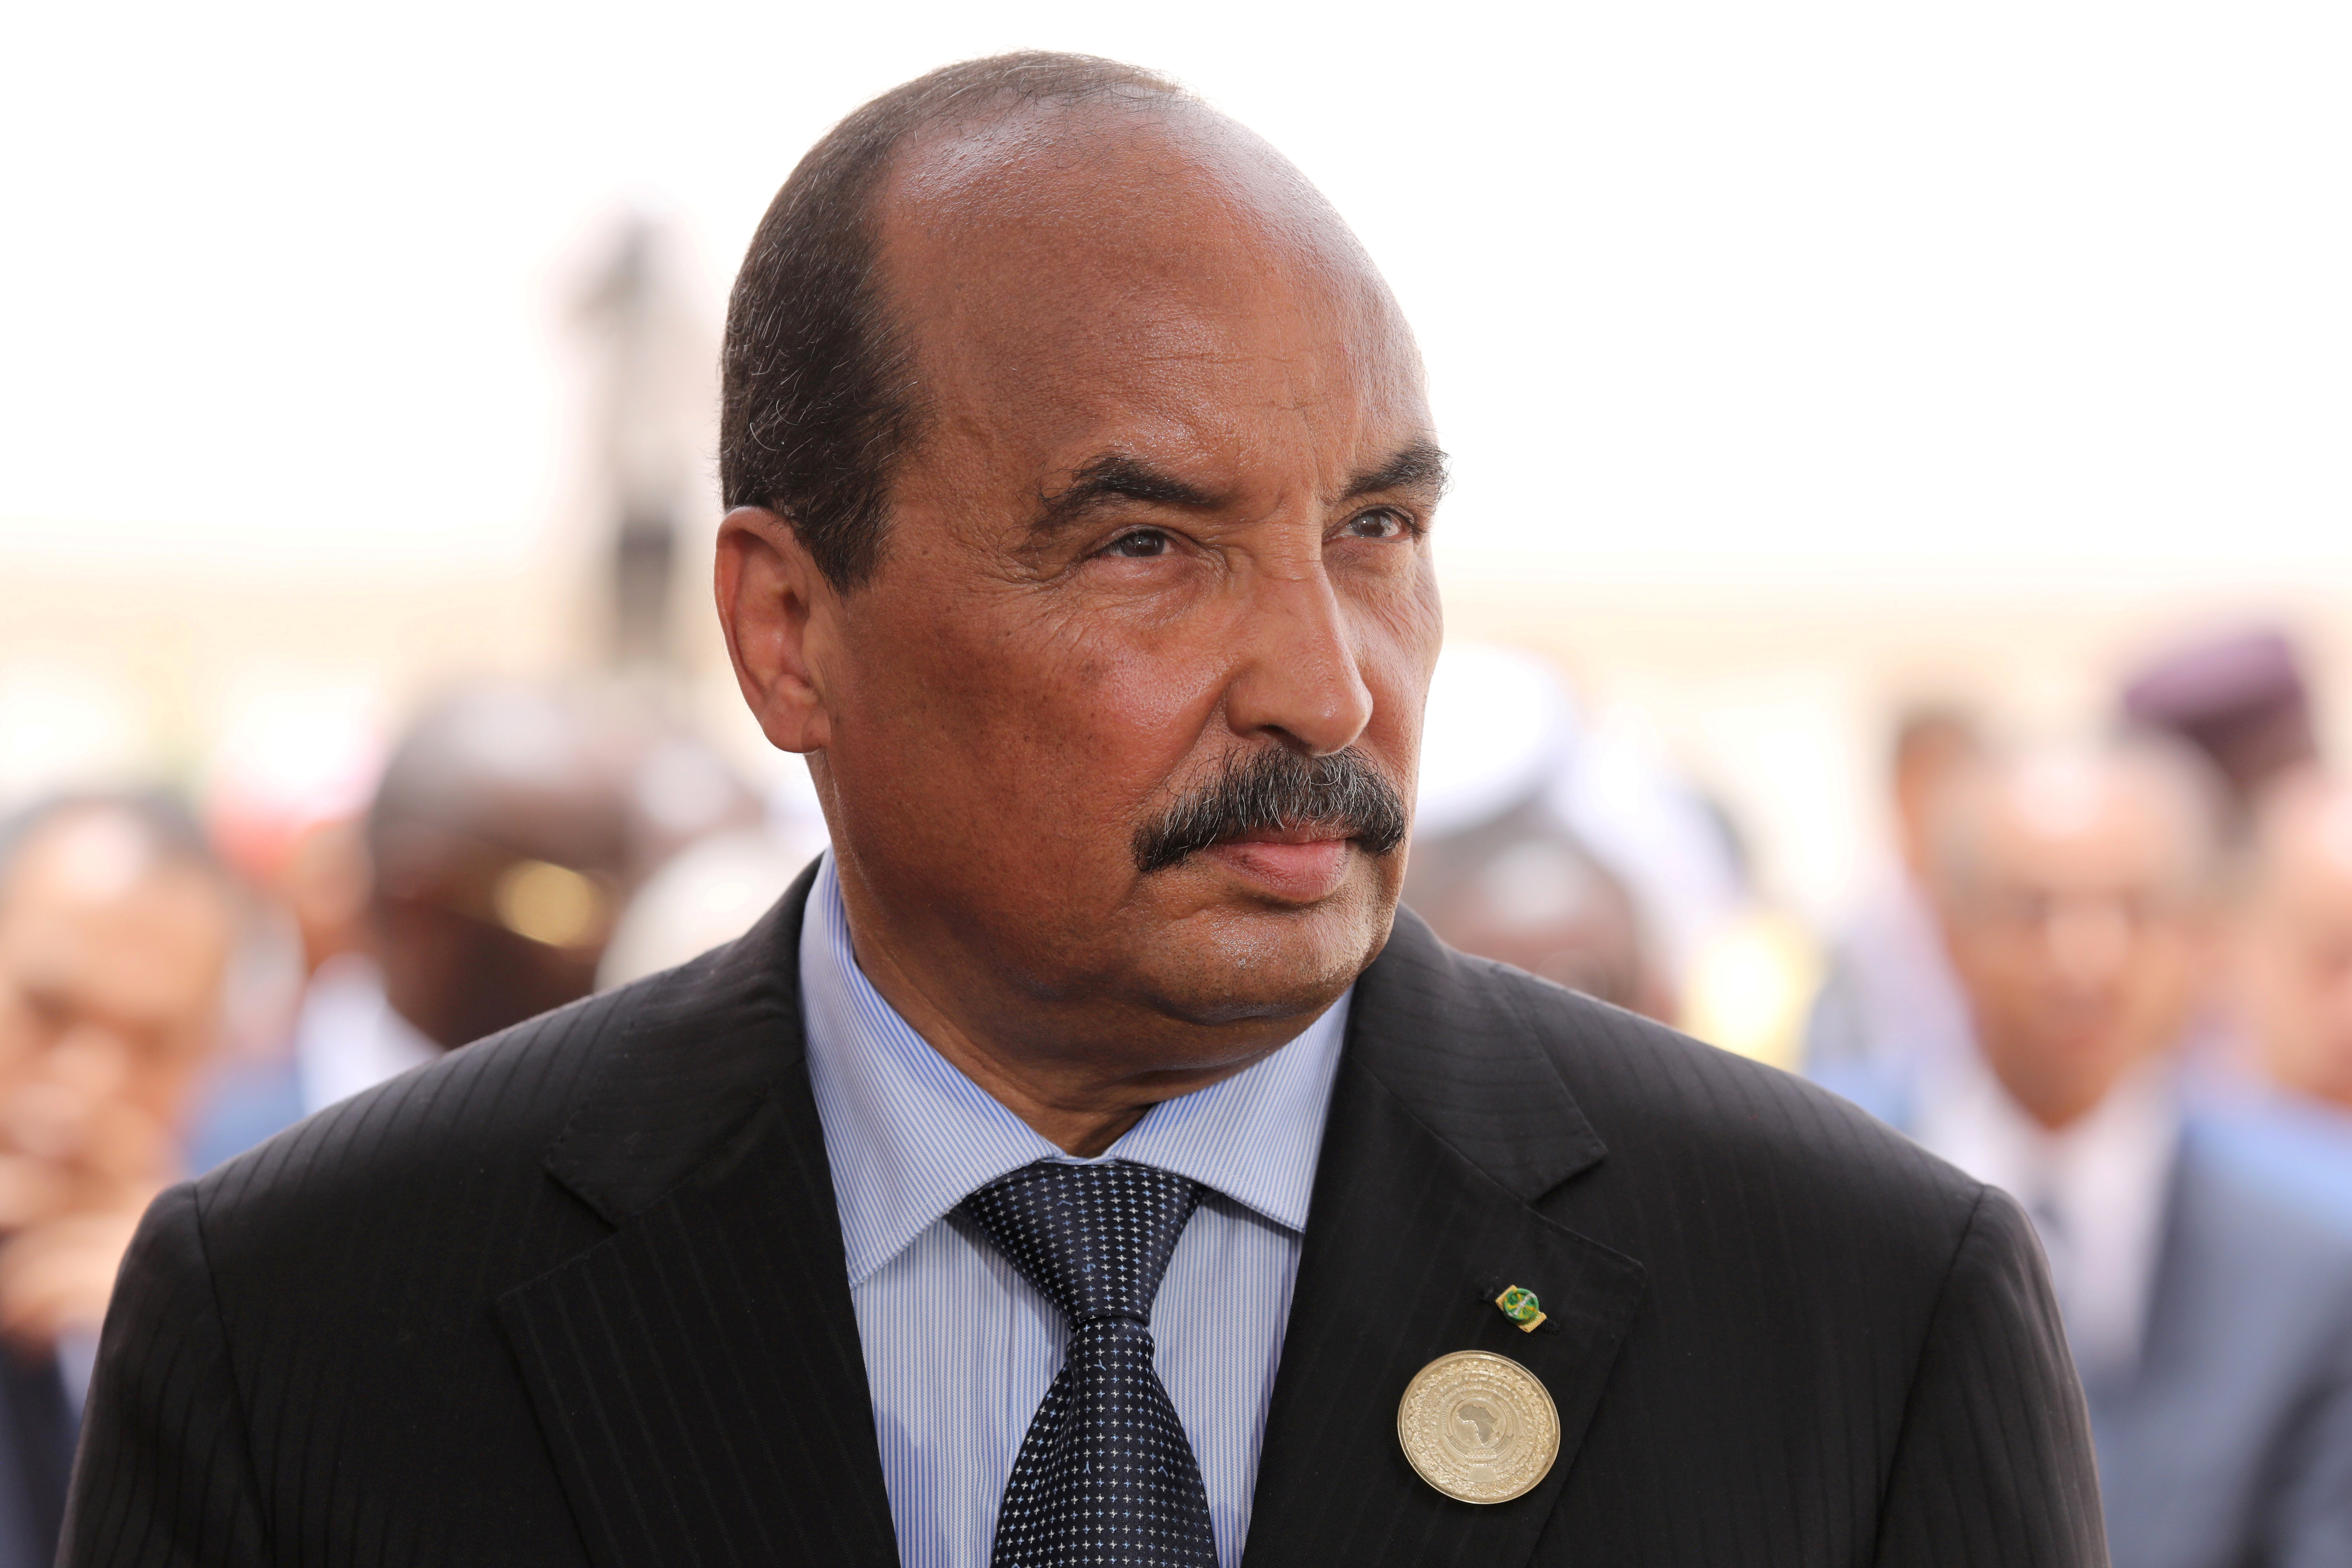 Mauritania's former President Mohamed Ould Abdel Aziz waits for the arrival of the French President at Nouakchott airport, Mauritania, July 2, 2018. Ludovic Marin/Pool via Reuters